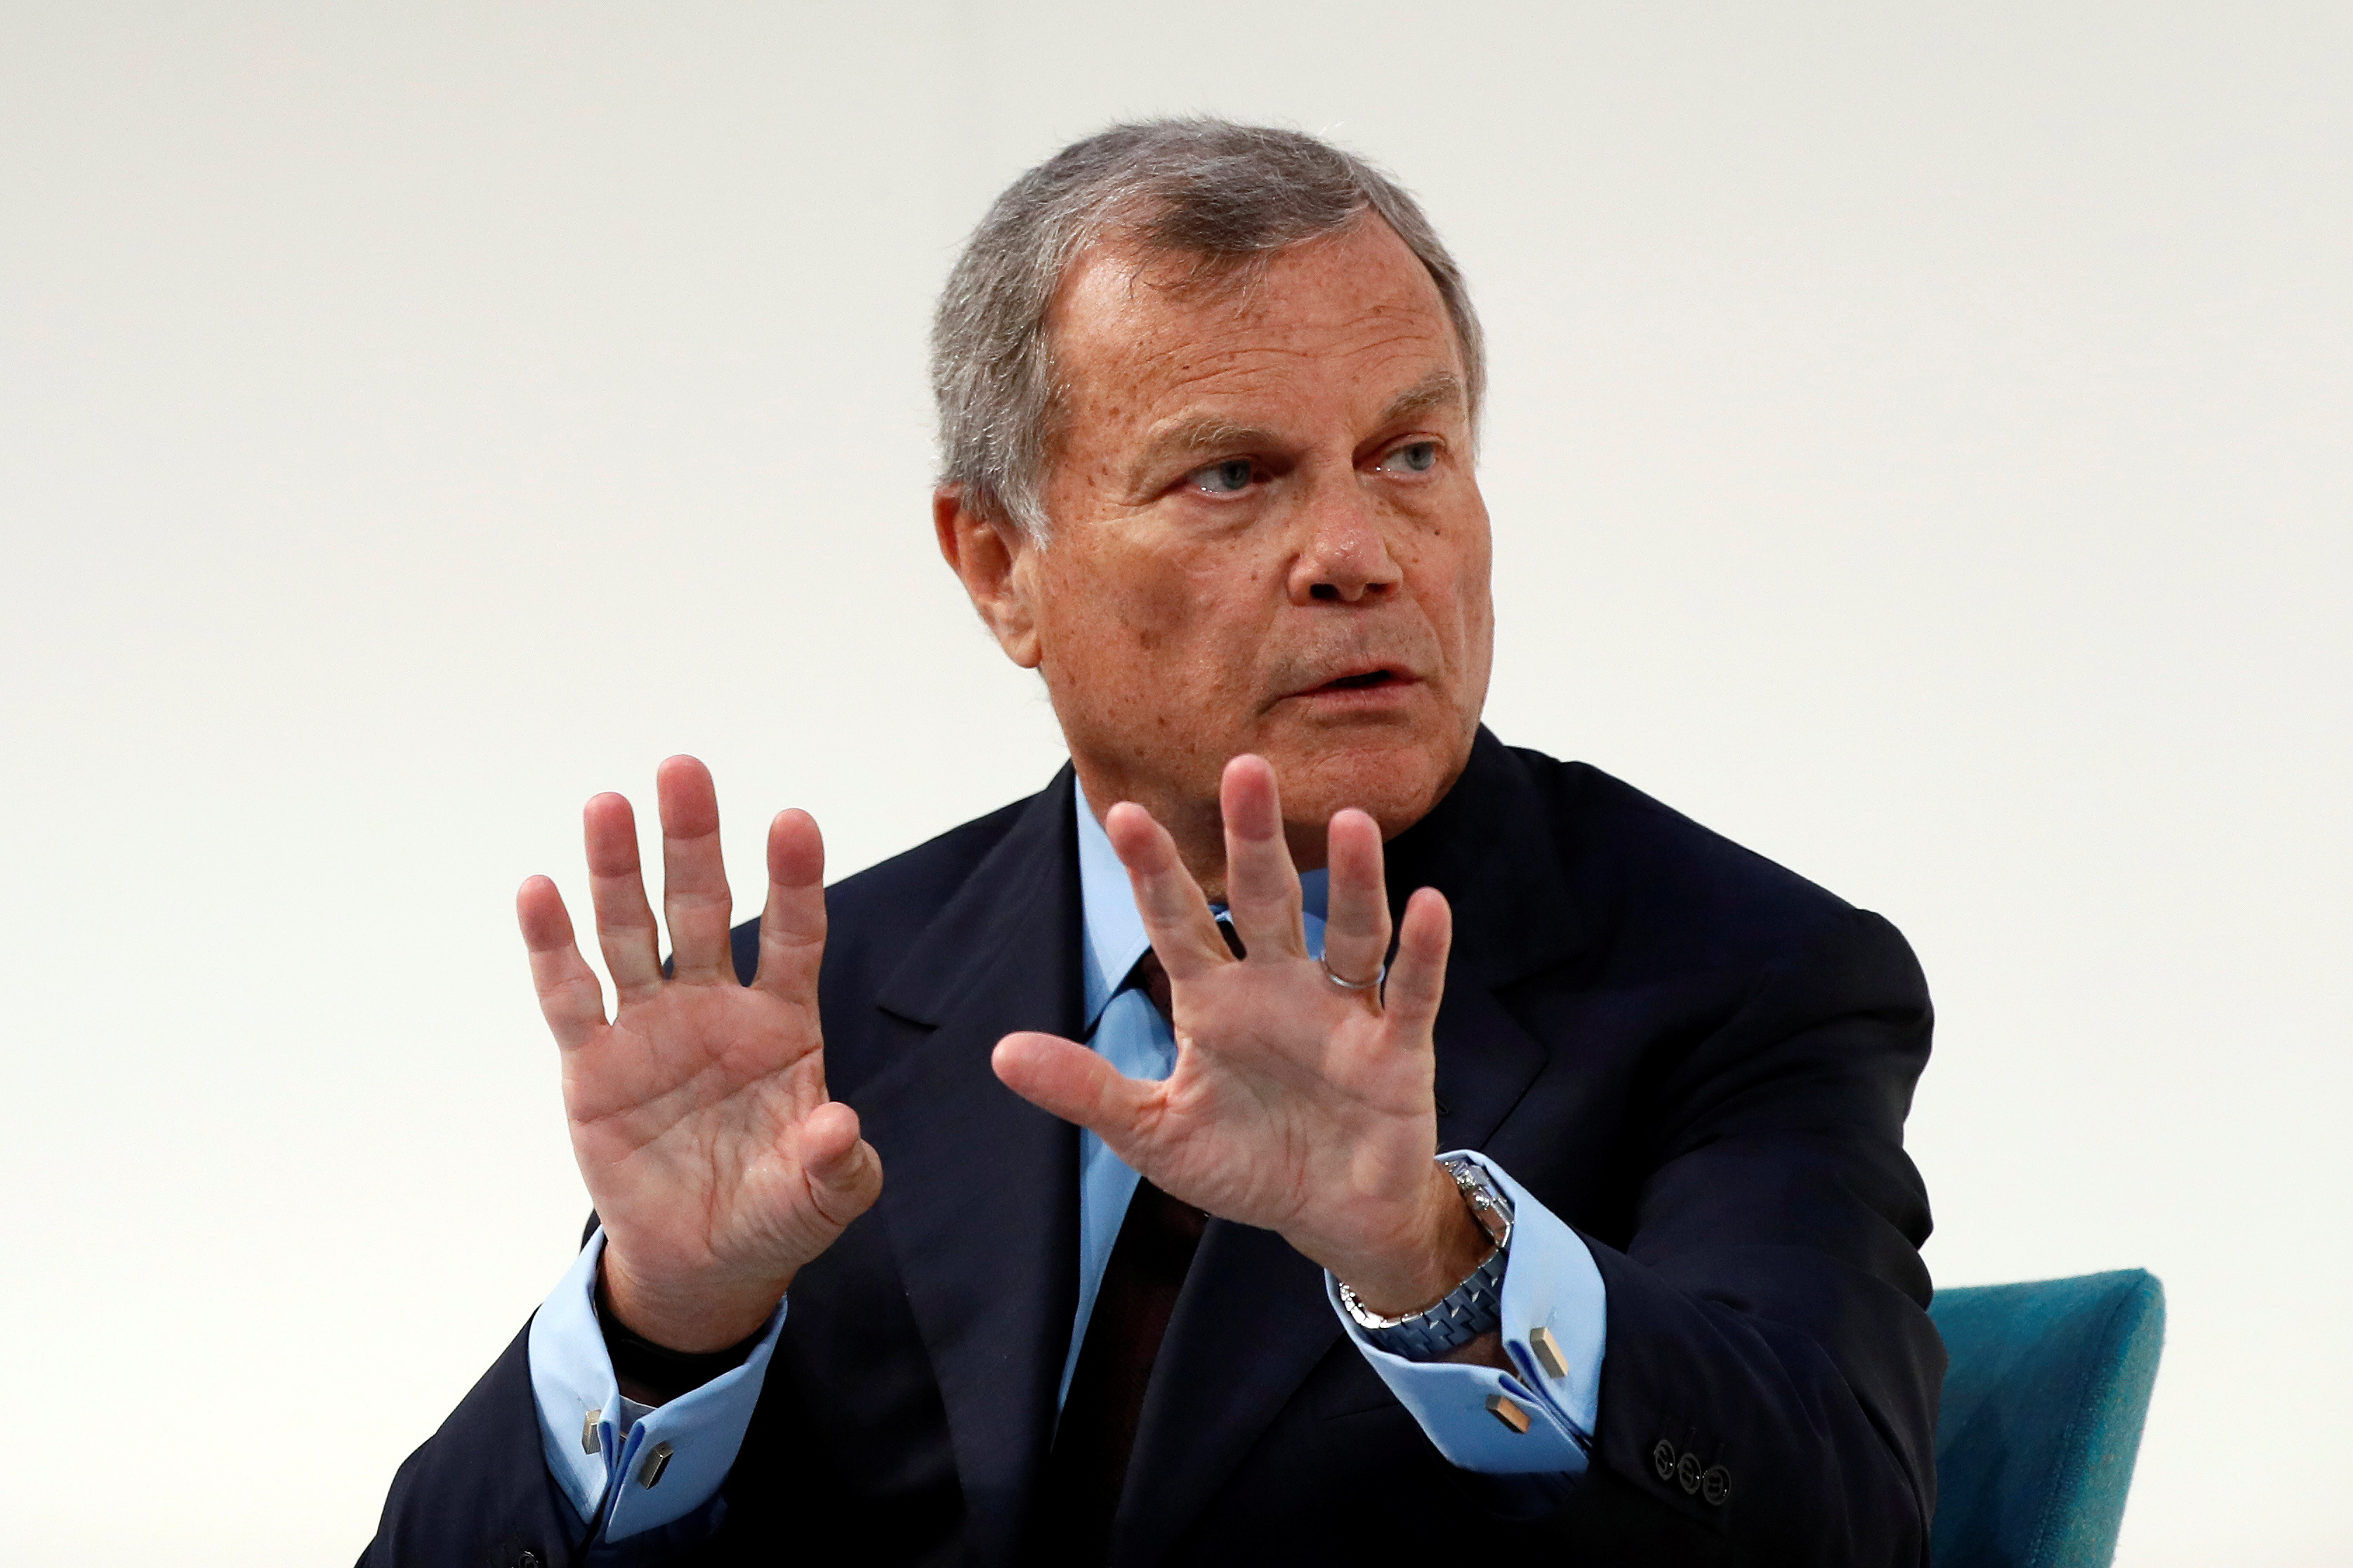 Martin Sorrell, chairman and chief executive officer of WPP, the world's largest advertising company, speaks at the Confederation of British Industry's (CBI) annual conference in London, Britain November 21, 2016. REUTERS/Stefan Wermuth - RTSSNS0